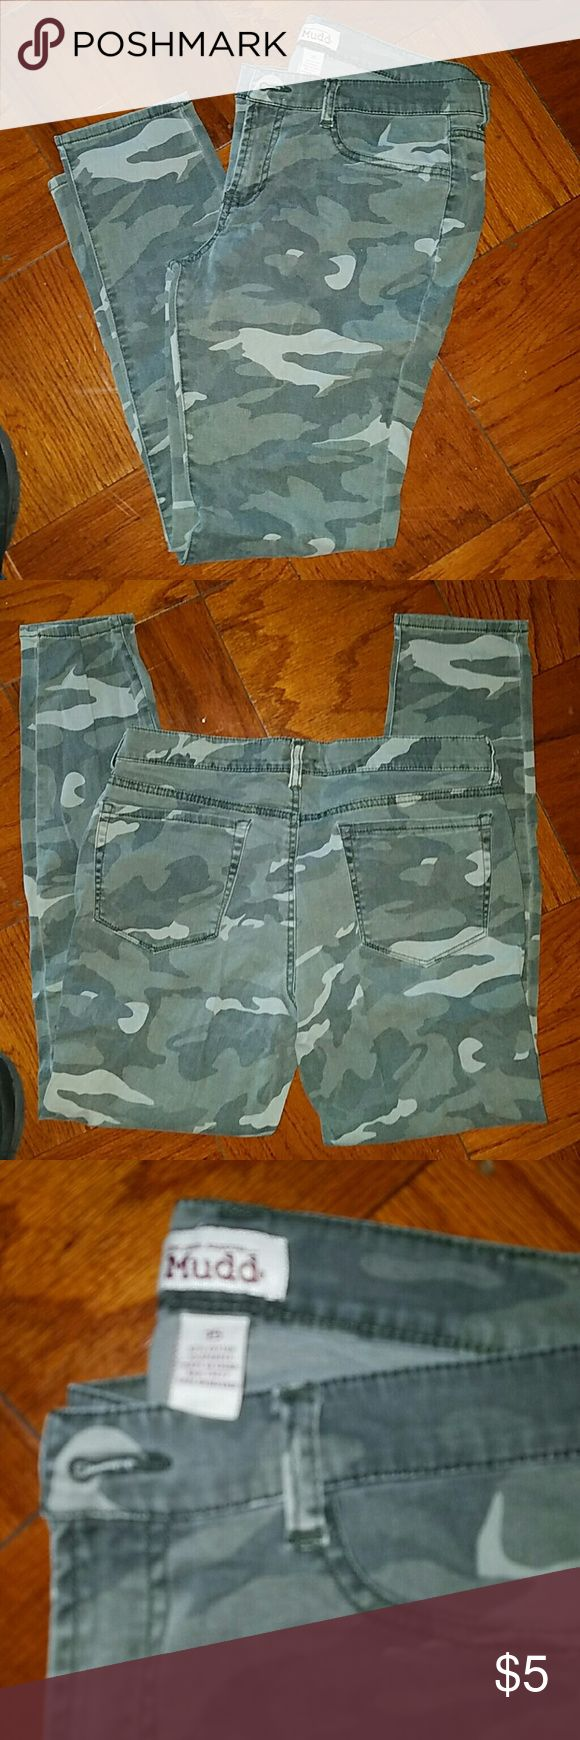 Mudd, juniors, camouflage skinny jeans Mudd brand,  juniors,  size 15, worn, good condition,  97% cotton, 3% spandex. Mudd Jeans Skinny